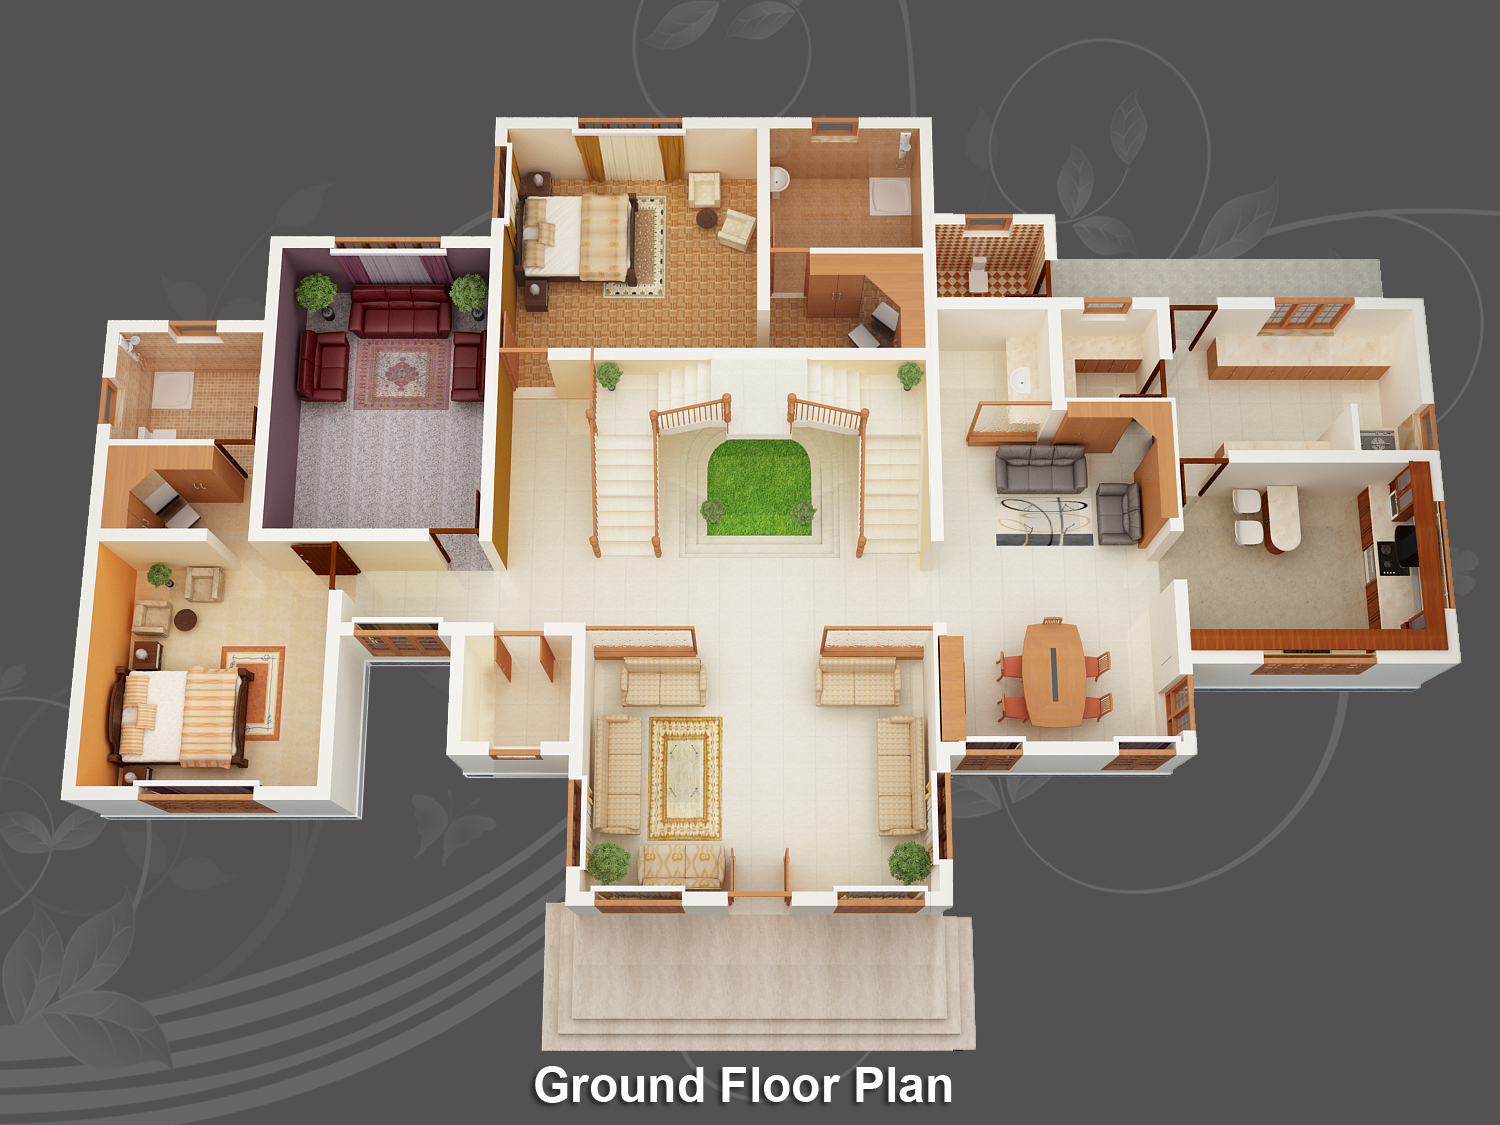 Evens construction pvt ltd may 2011 for 3d view of house interior design